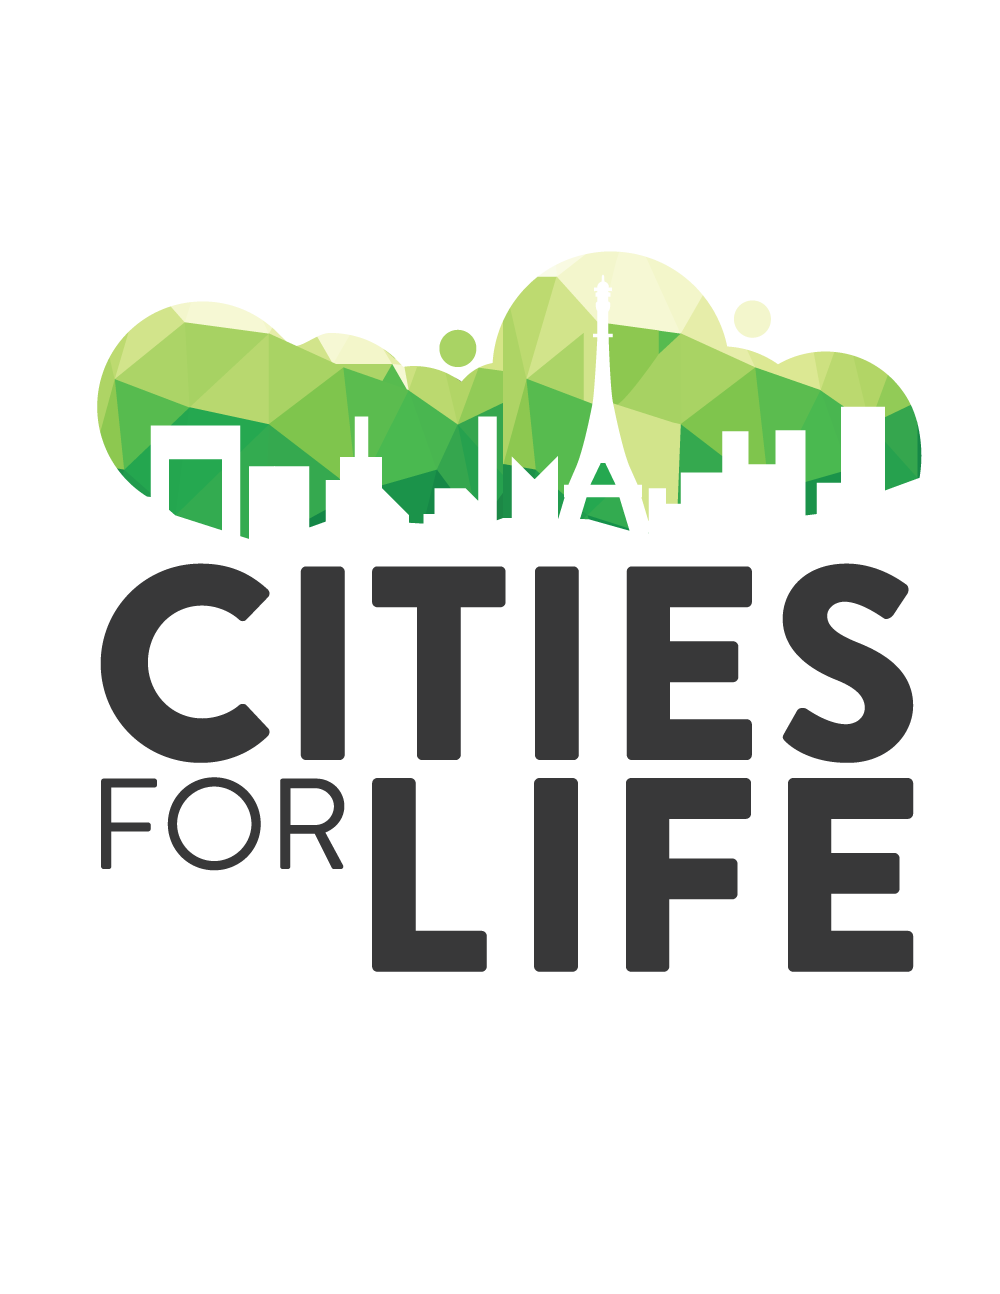 Logo de Cities For Life